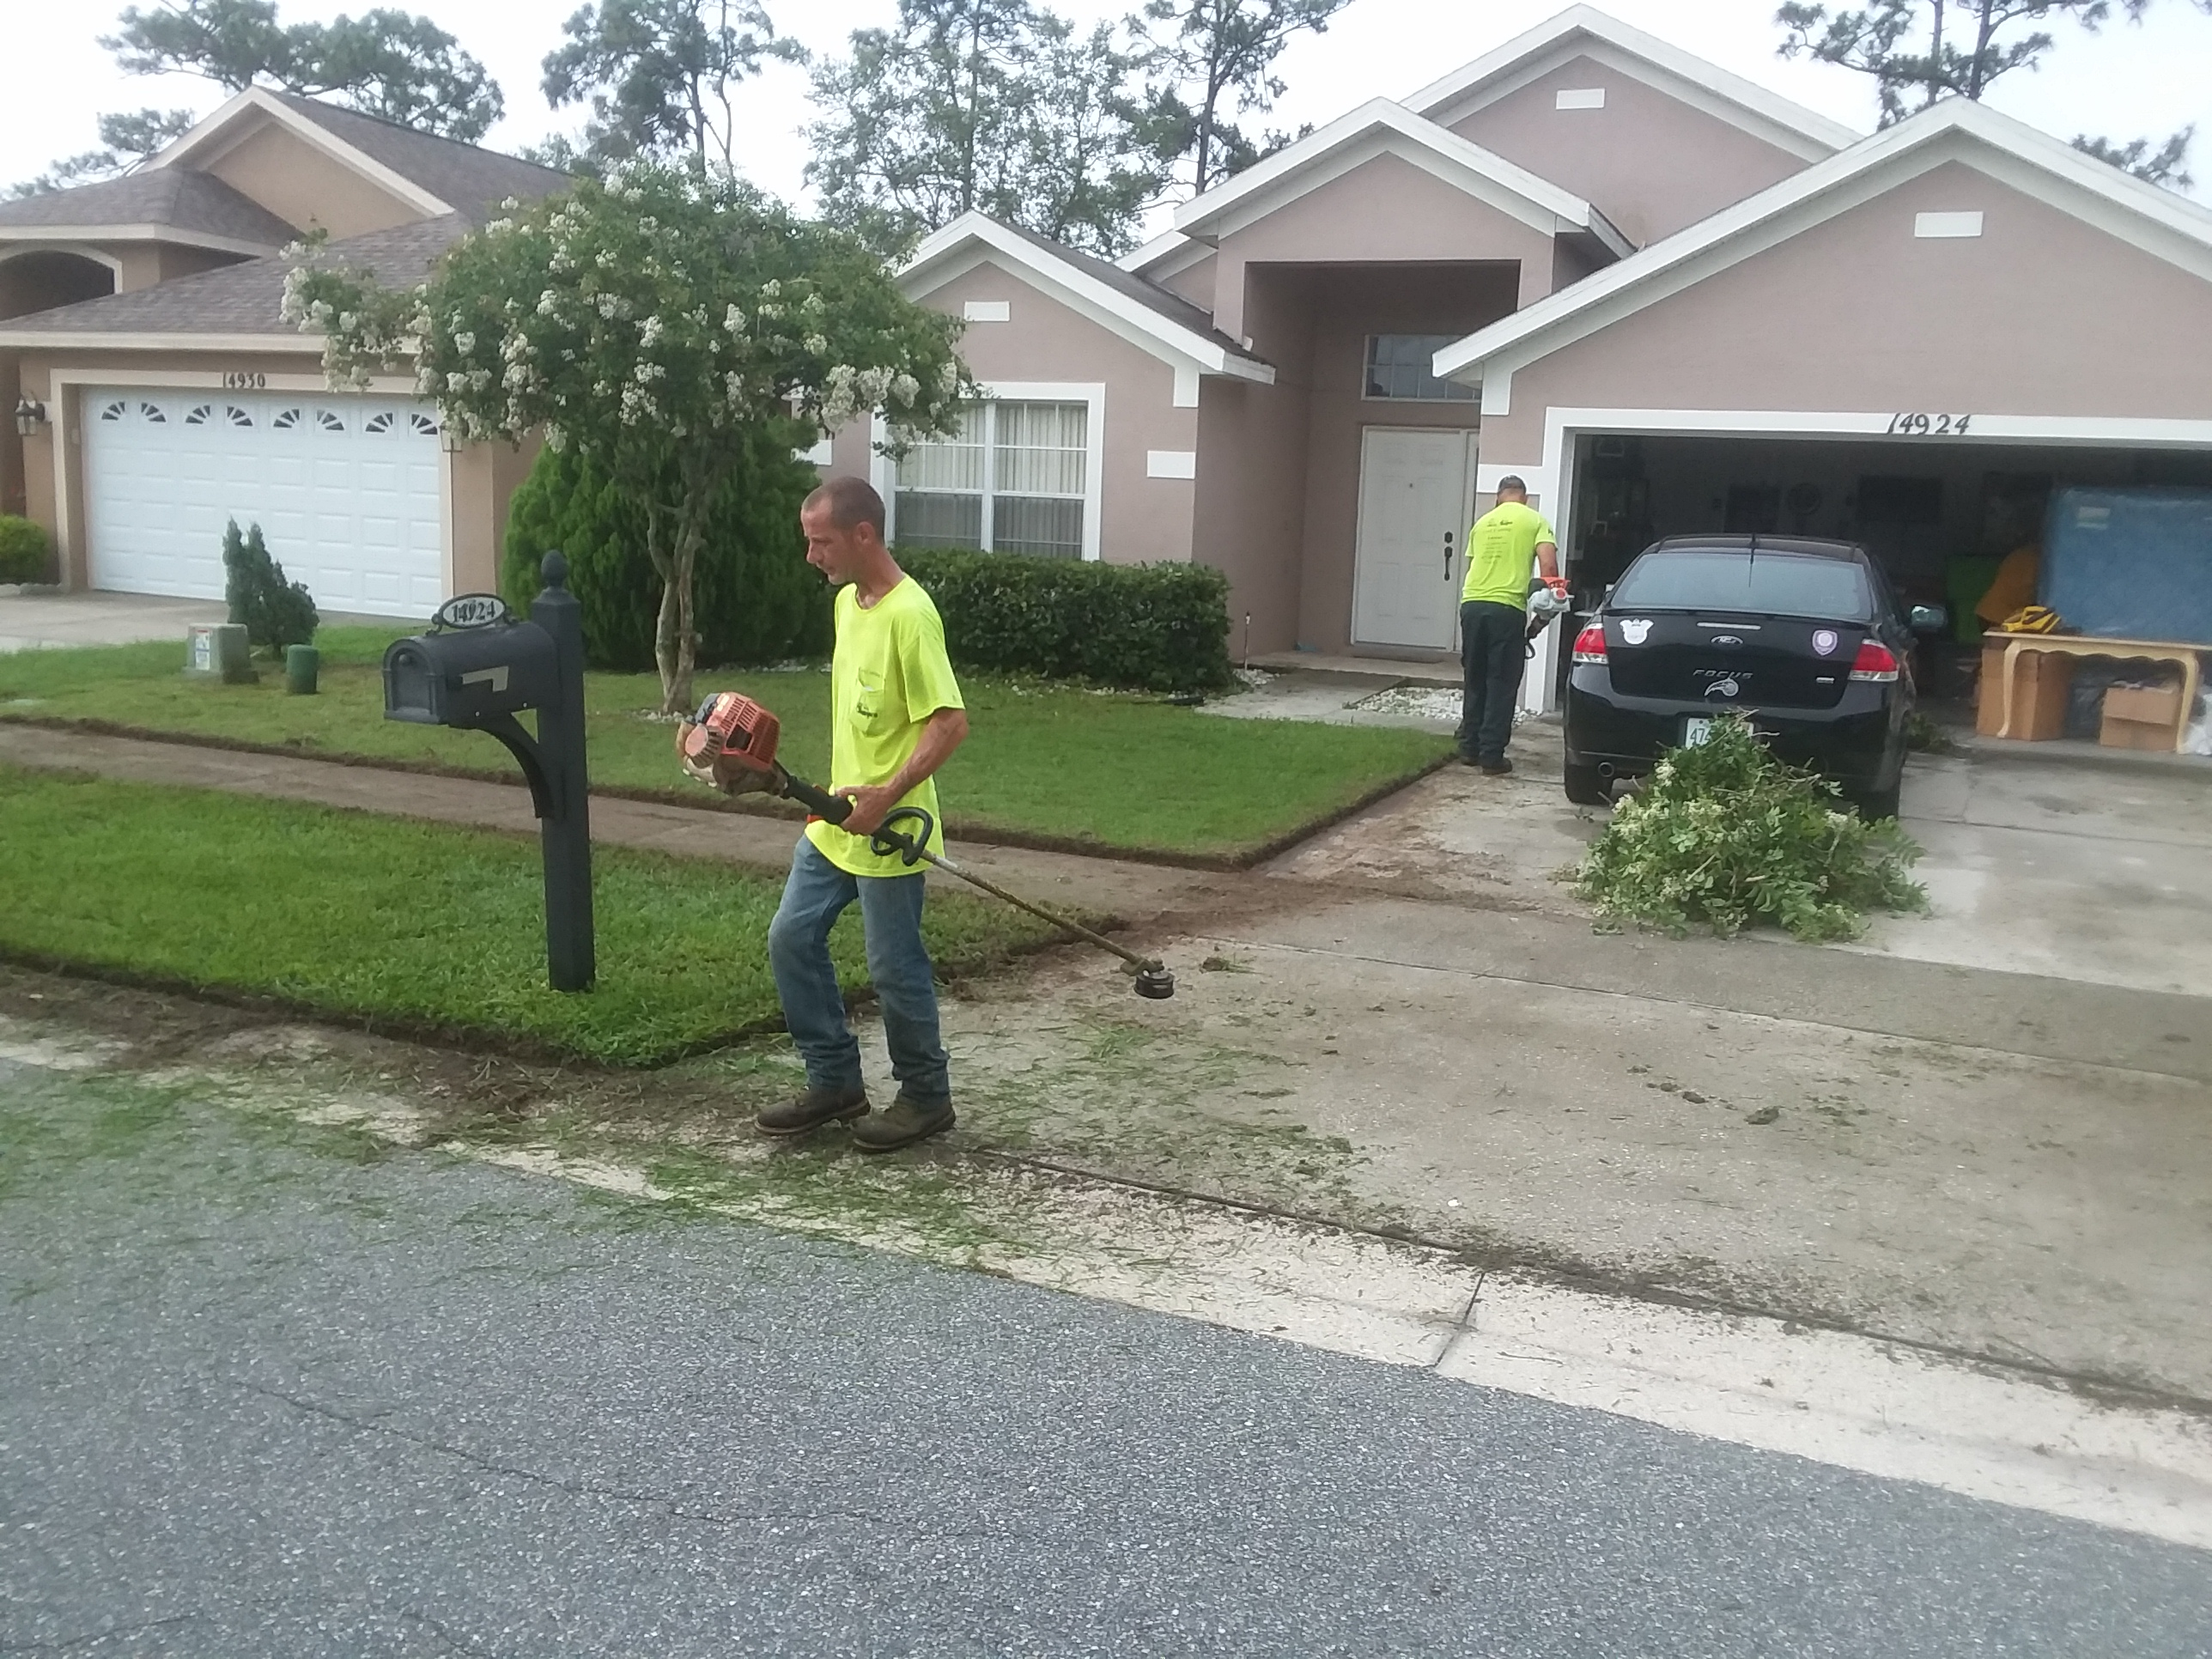 Lovely Lawn Care orlando Fl